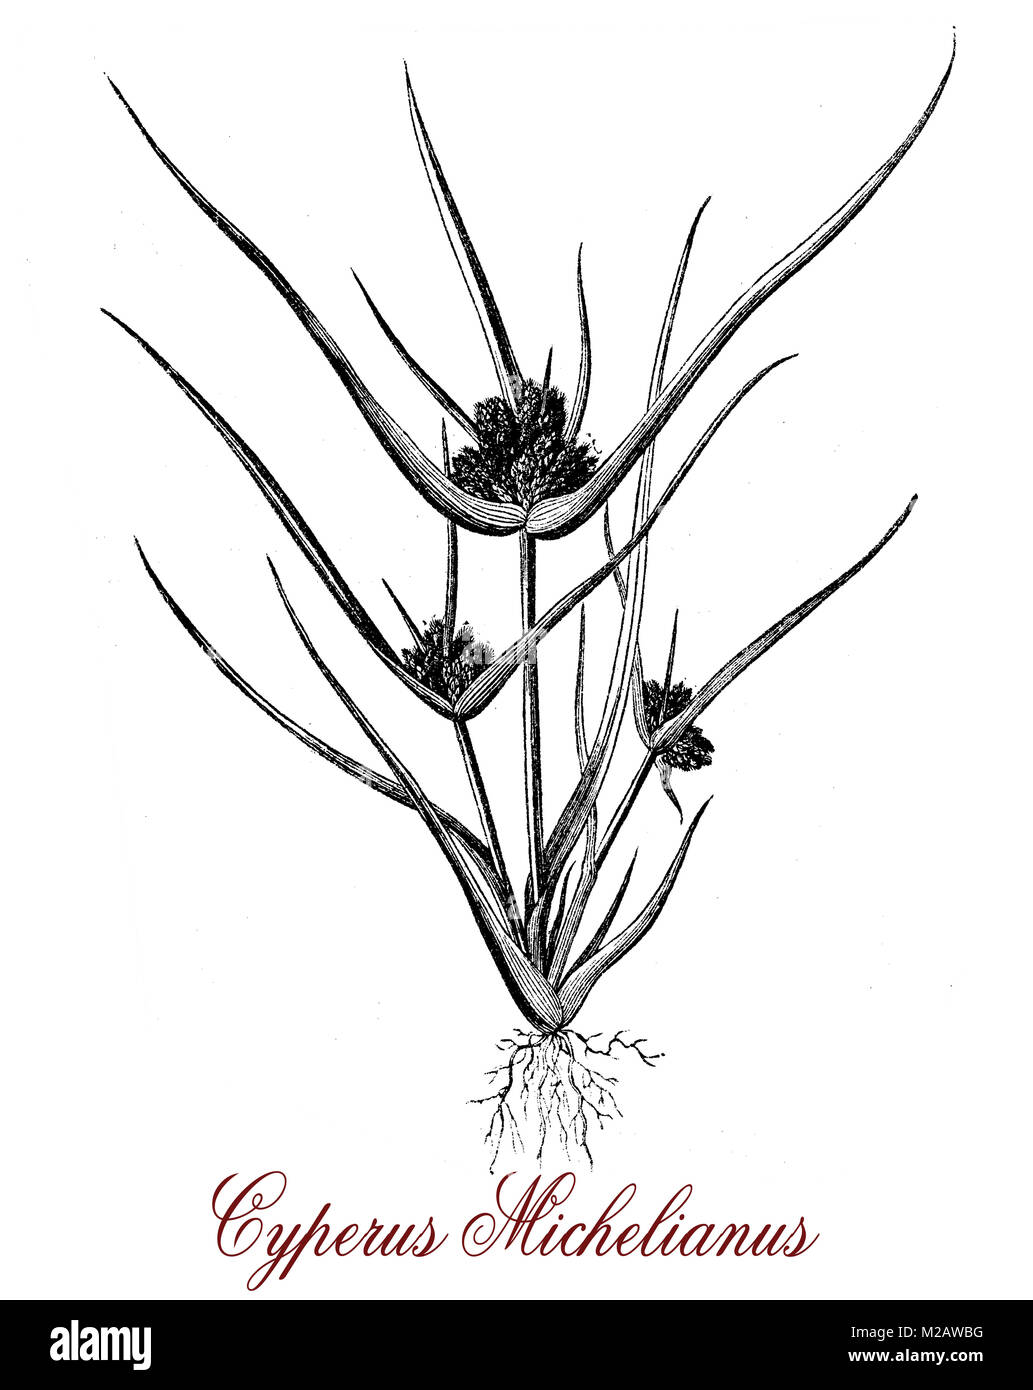 Vintage engraving of cyperus michelianus, plant of the Cyperaceae family which grows on river shores and at the - Stock Image